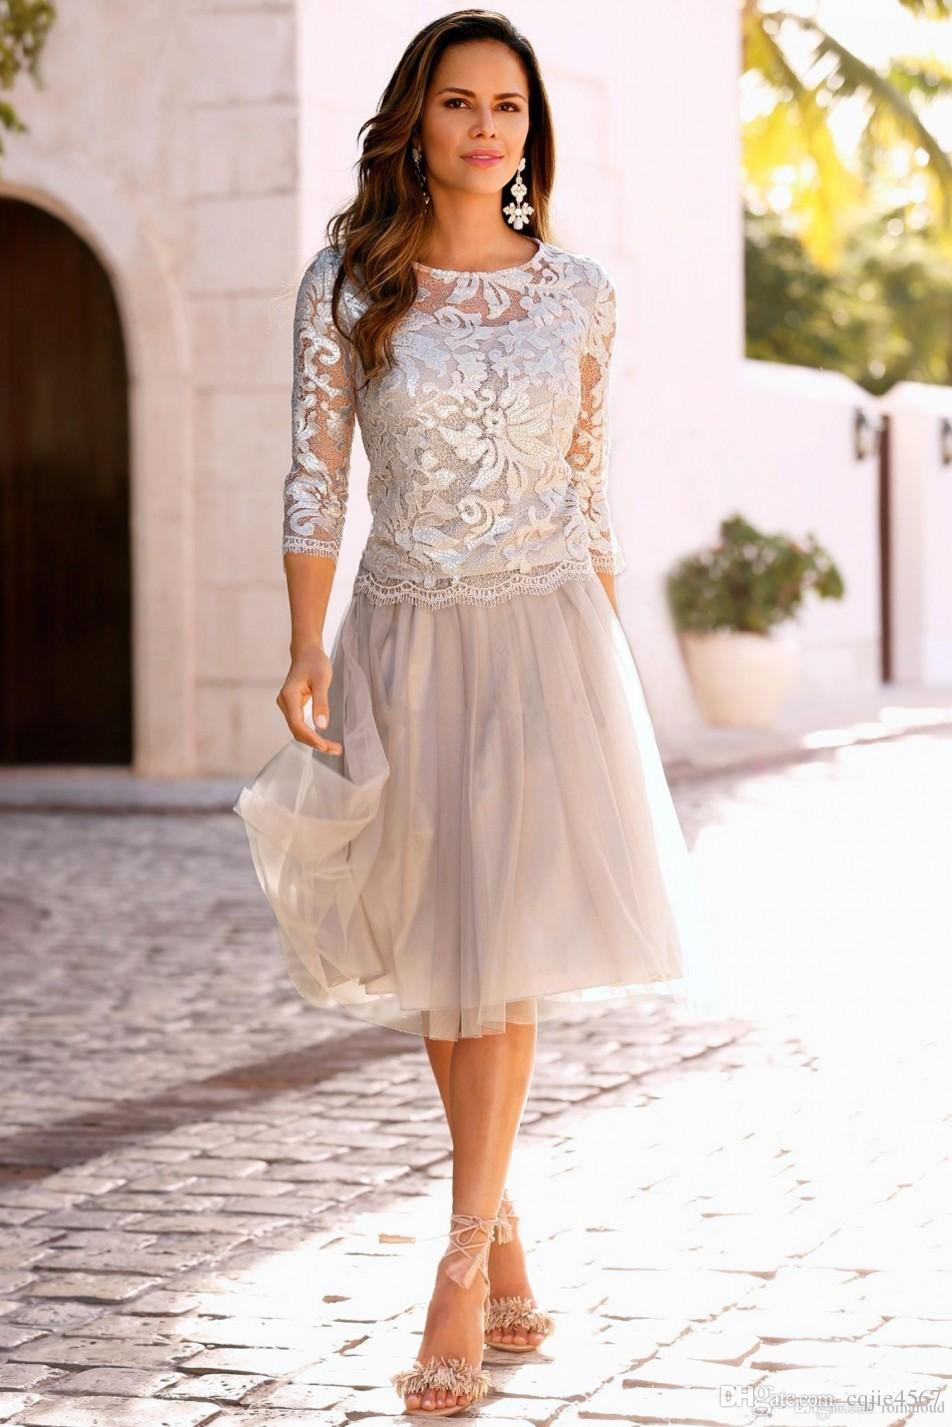 Cheap Lace Mother of The Bride Dresses Tiered Tulle 3/4 Sleeves Knee Length Wedding Party Dresses A Line Mother's Dresses Custom Made 754